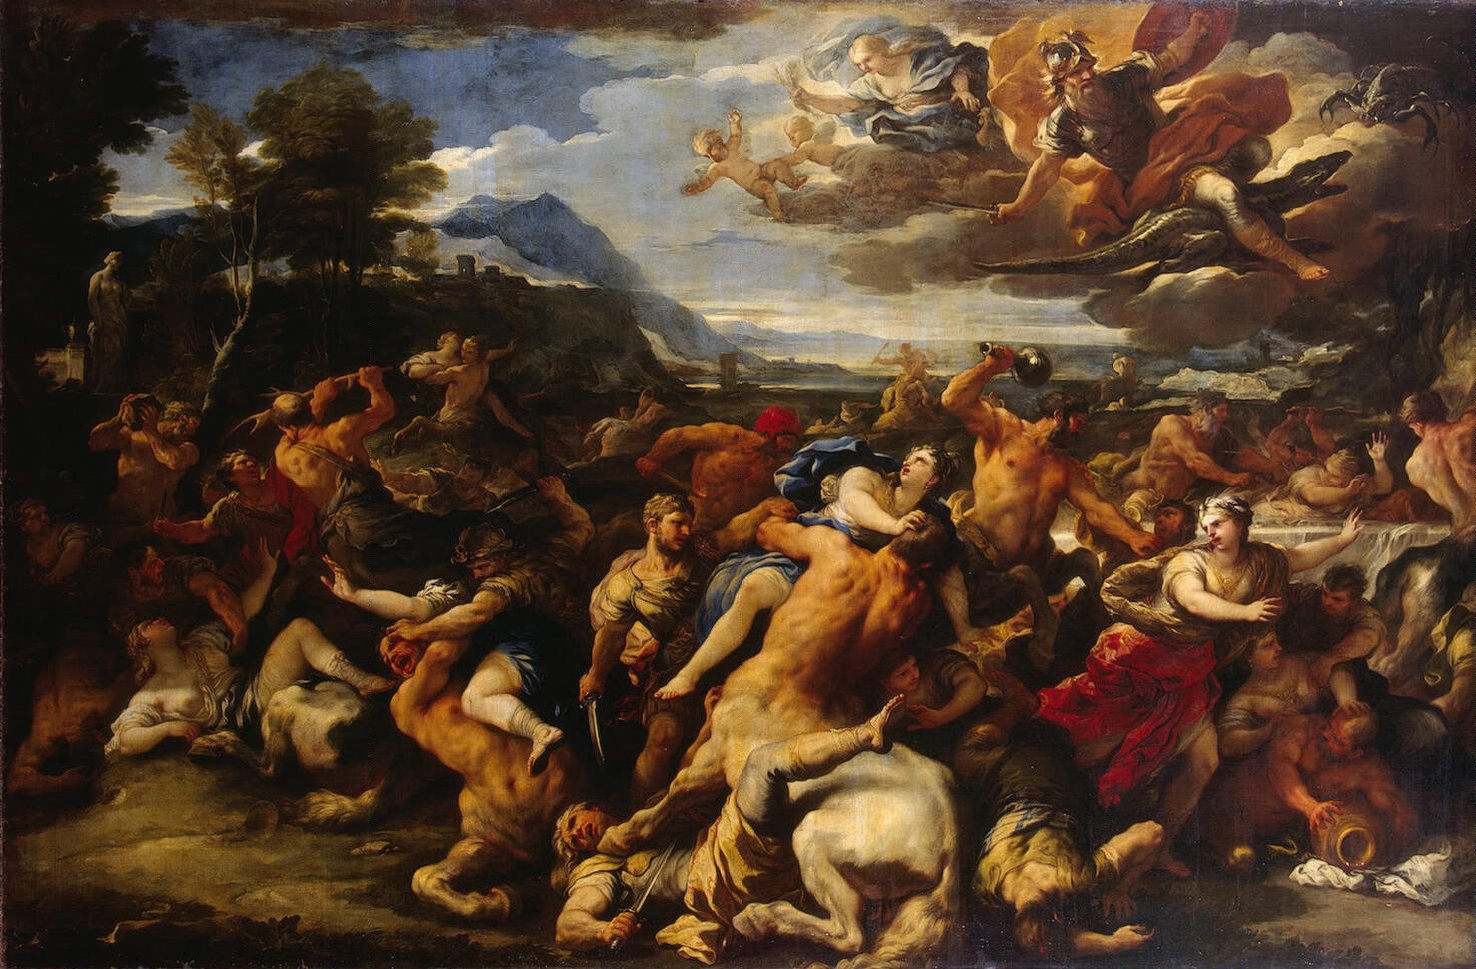 mythology paintings - get domain pictures - getdomainvids.com